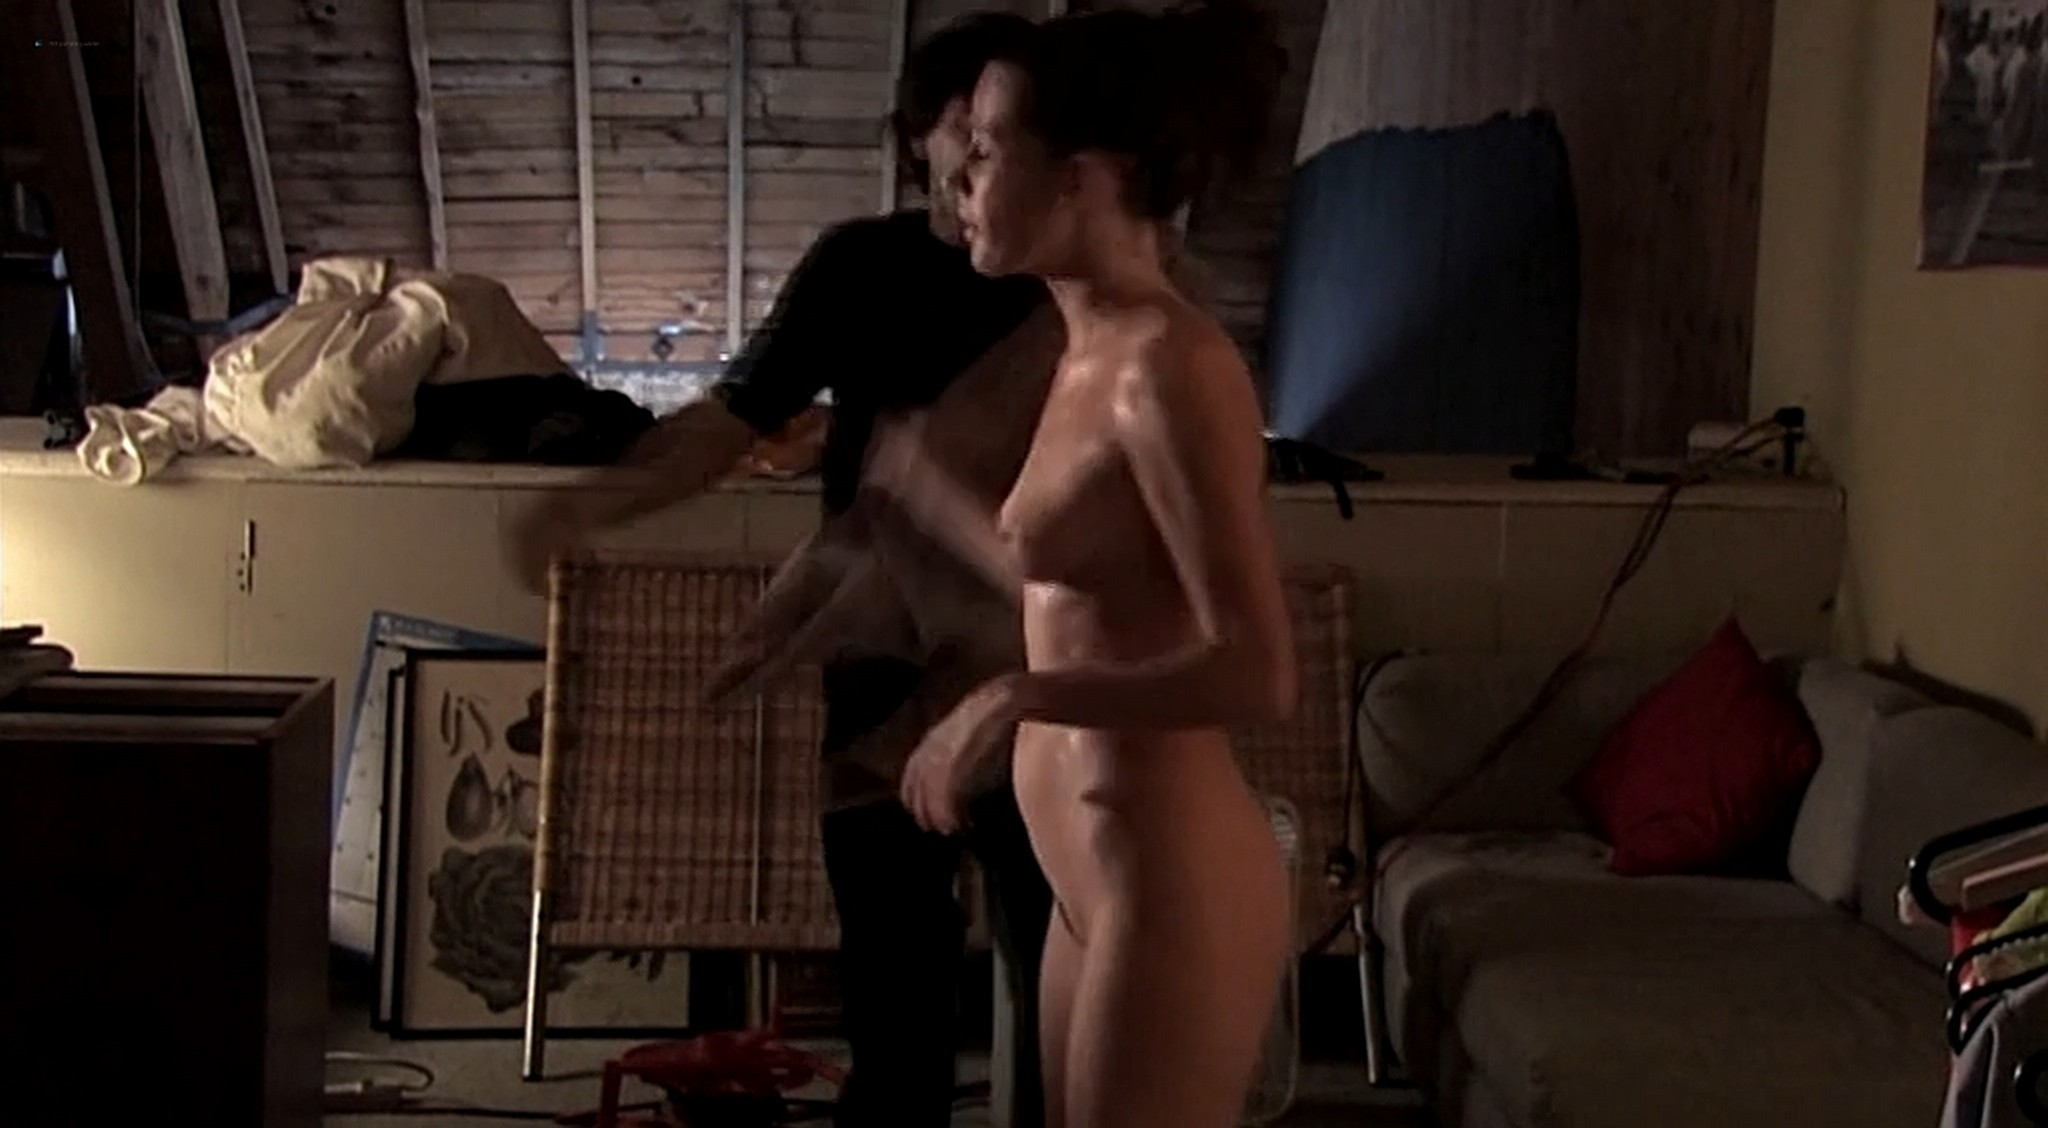 Victoria De Mare nude Roxy DeVille and others nude sex too Bio Slime 2010 DVDRip 4